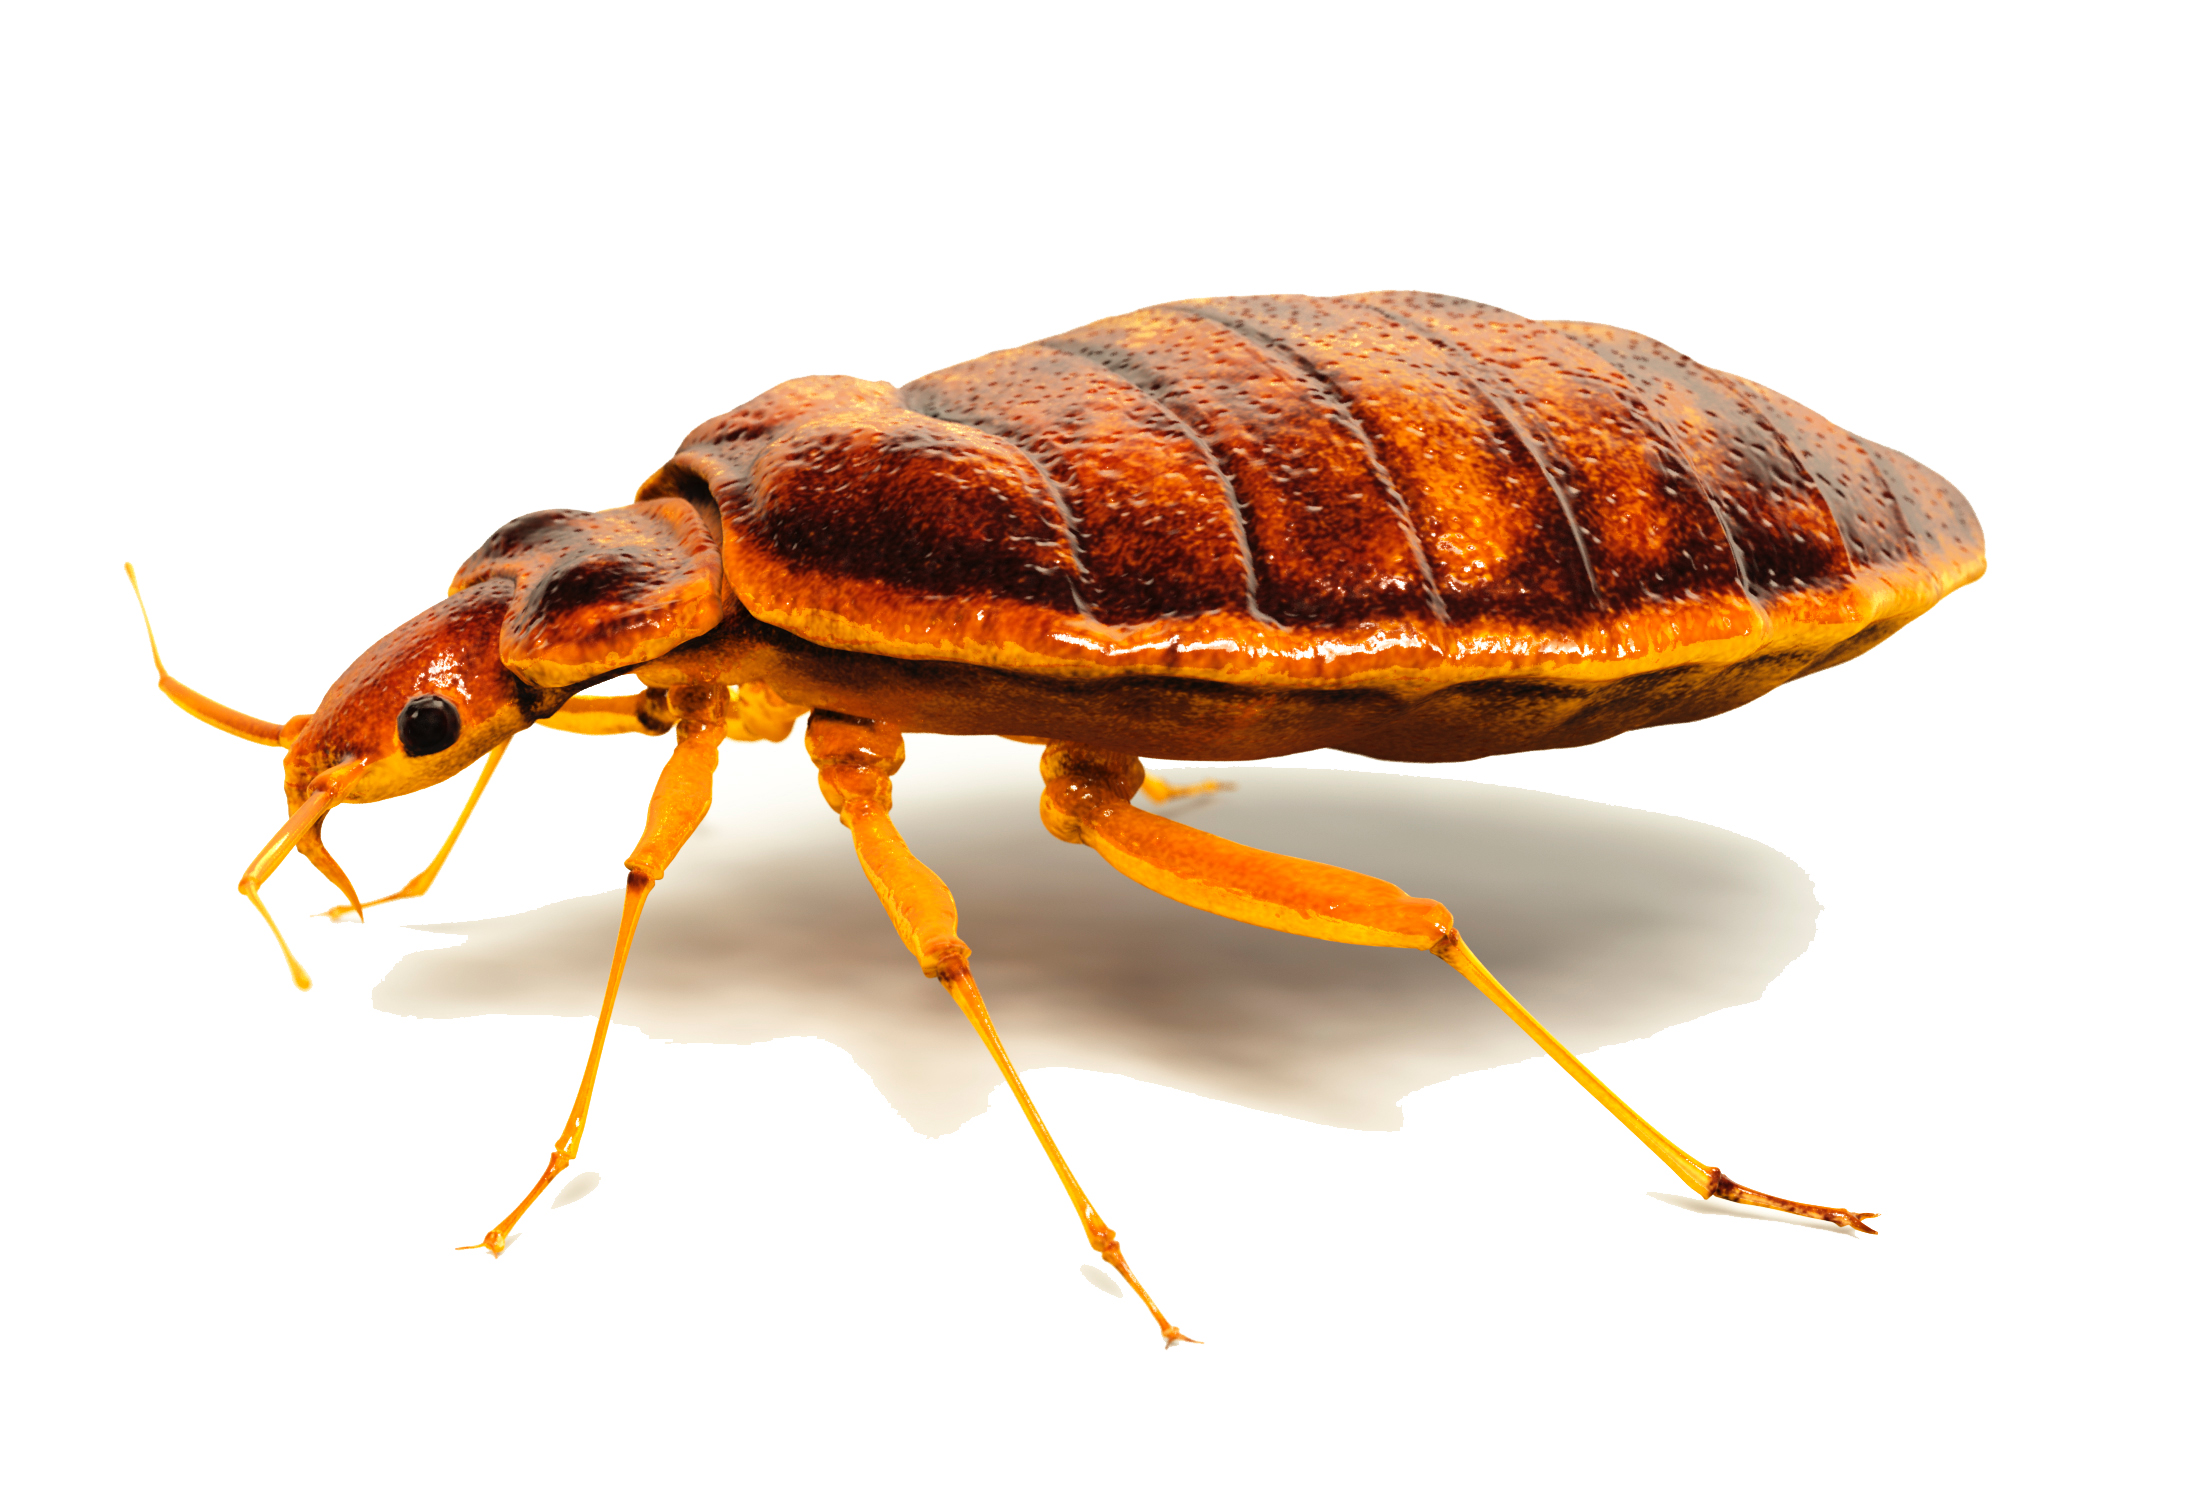 realistic composite of an adult bed bug; profile view; compare to  Bed Bug Mug Shots  of actual bed bug specimens - note the fine hairs are missing in this composite.